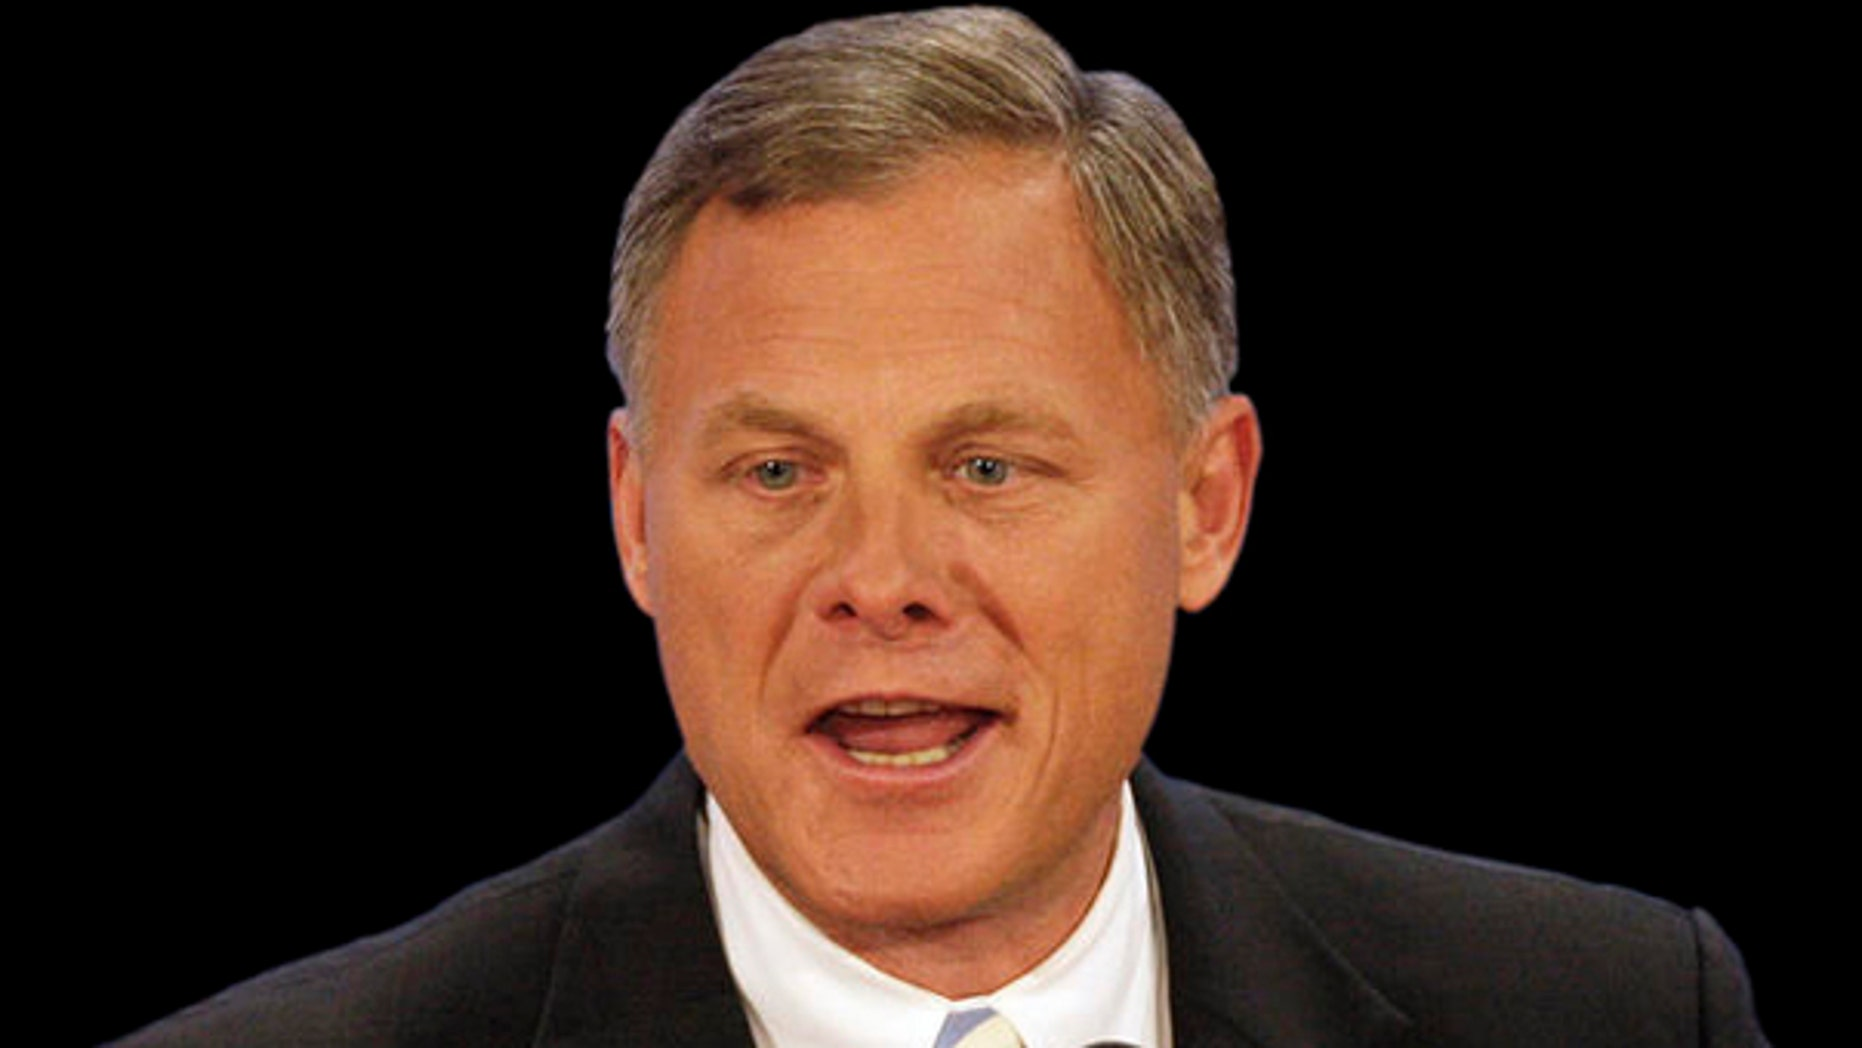 Sen. Richard Burr, R-N.C. is lashing out against the Brady Campaign to Prevent Gun Violence, accusing the group of exploiting the deadly rampage to oppose his gun lobby backed bill. (AP)